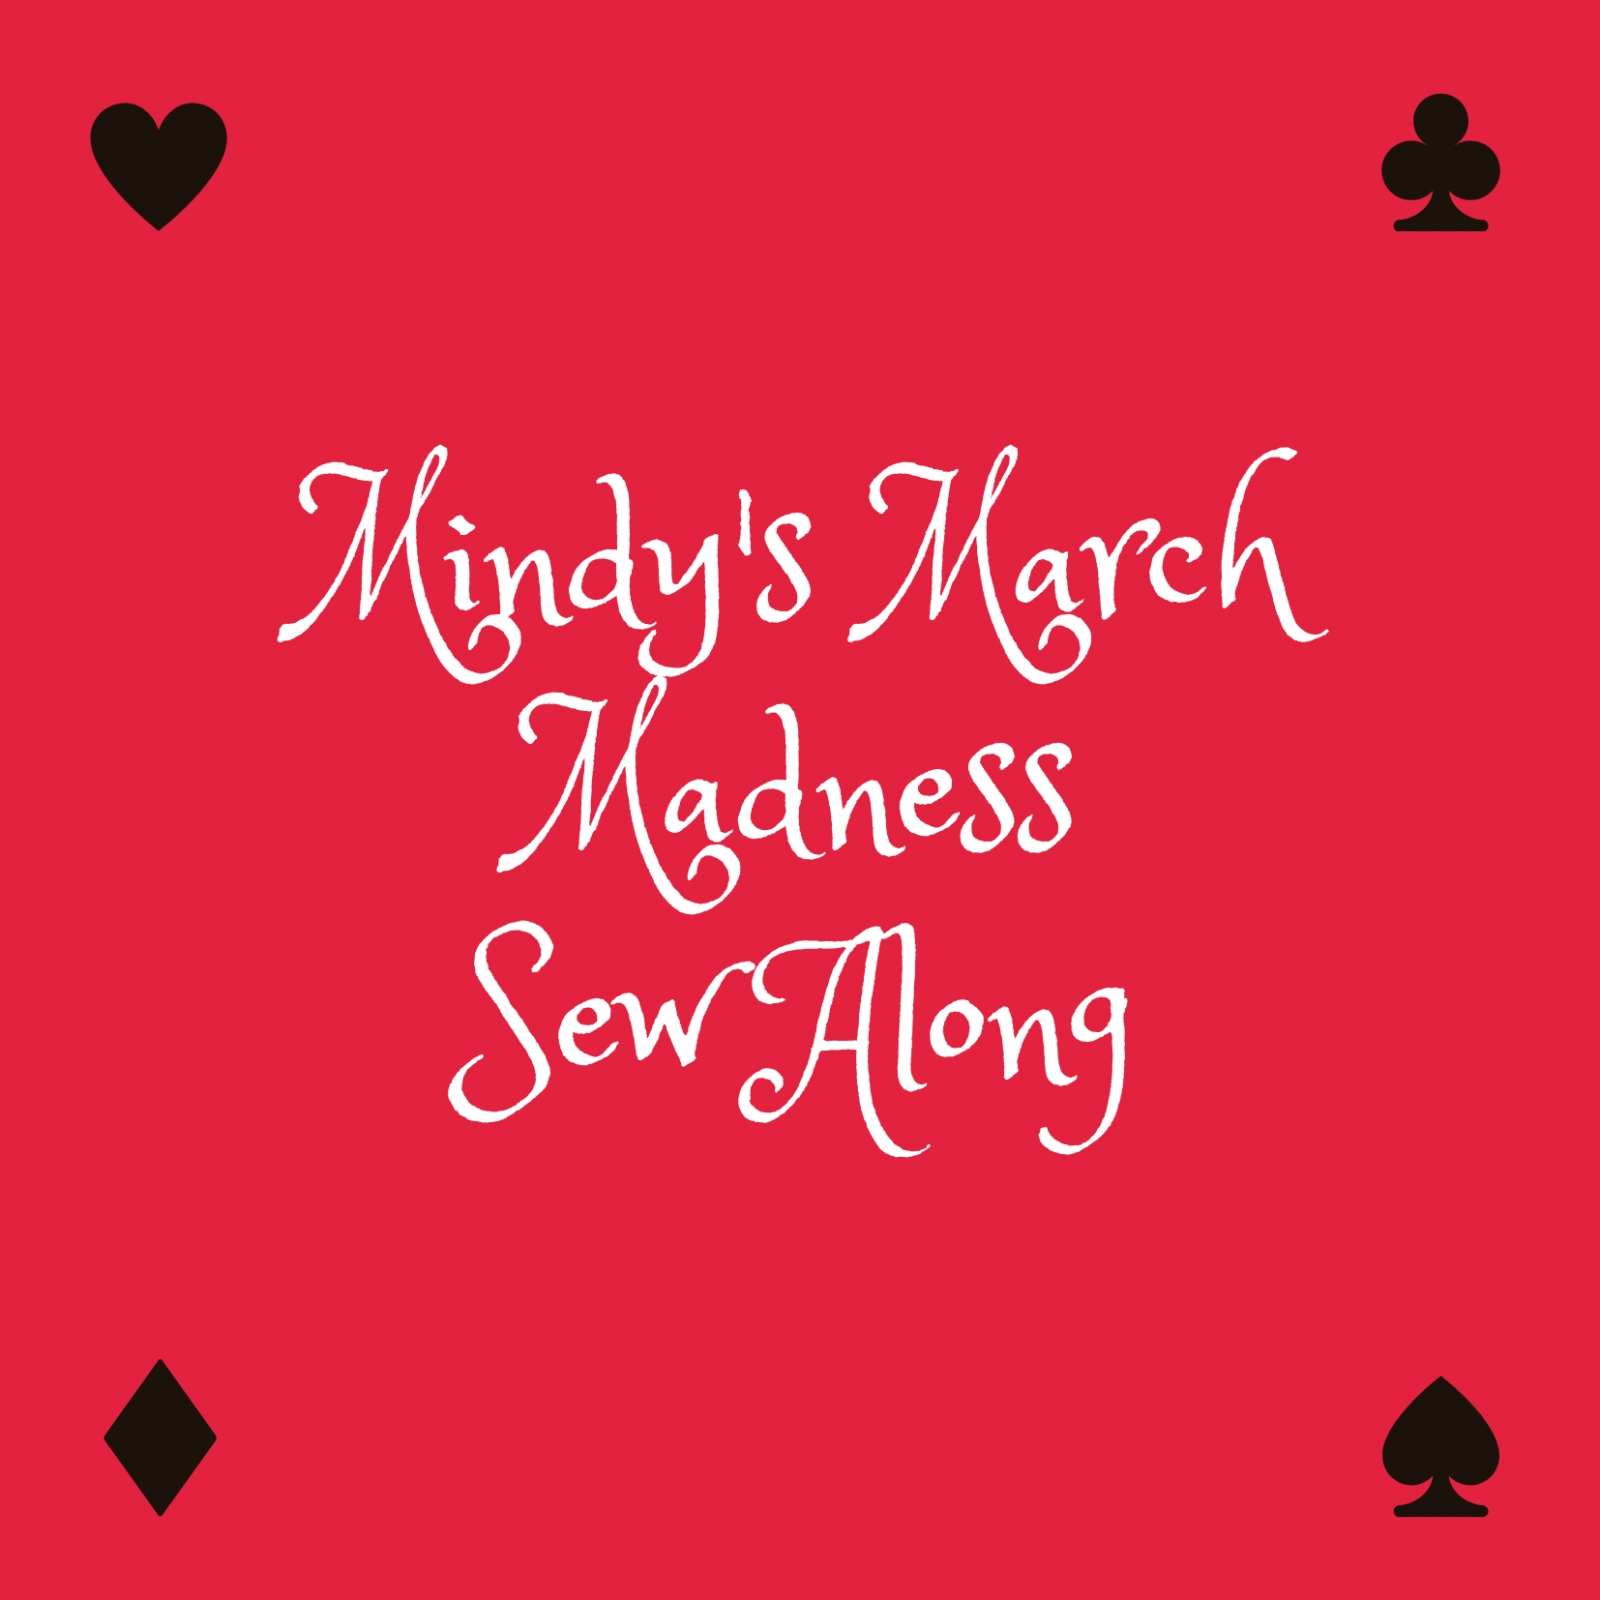 Mindy's March Madness Buy-in